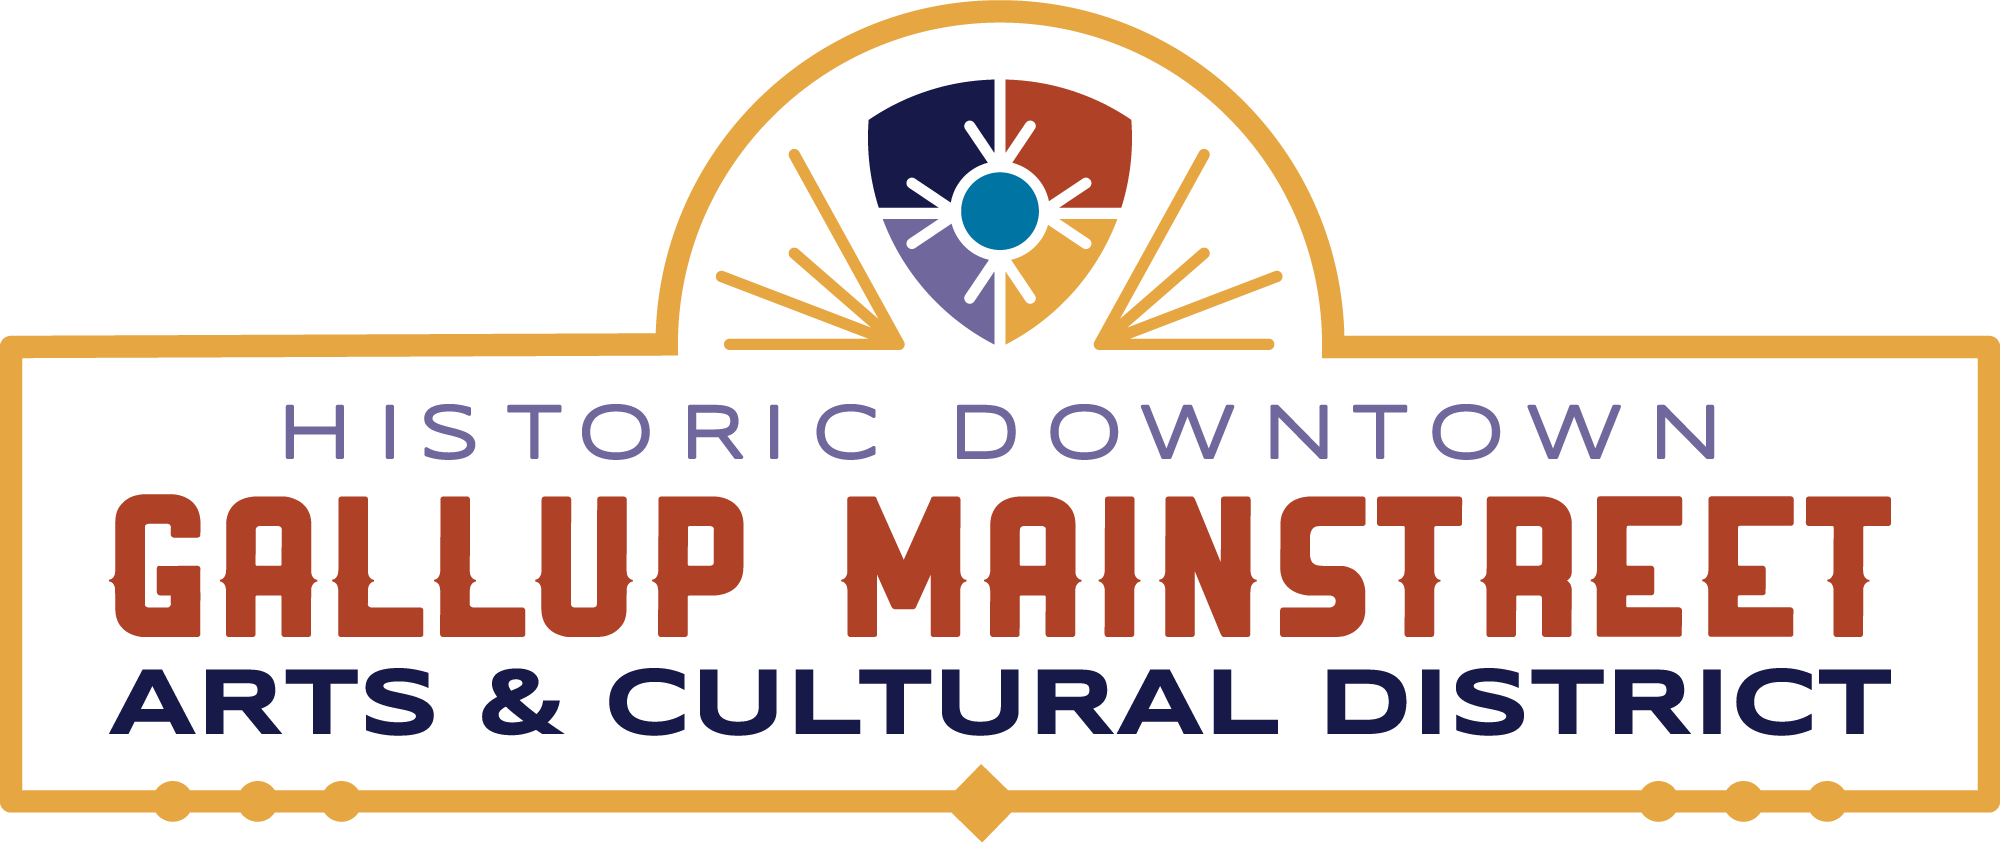 Gallup MainStreet Arts & Cultural District